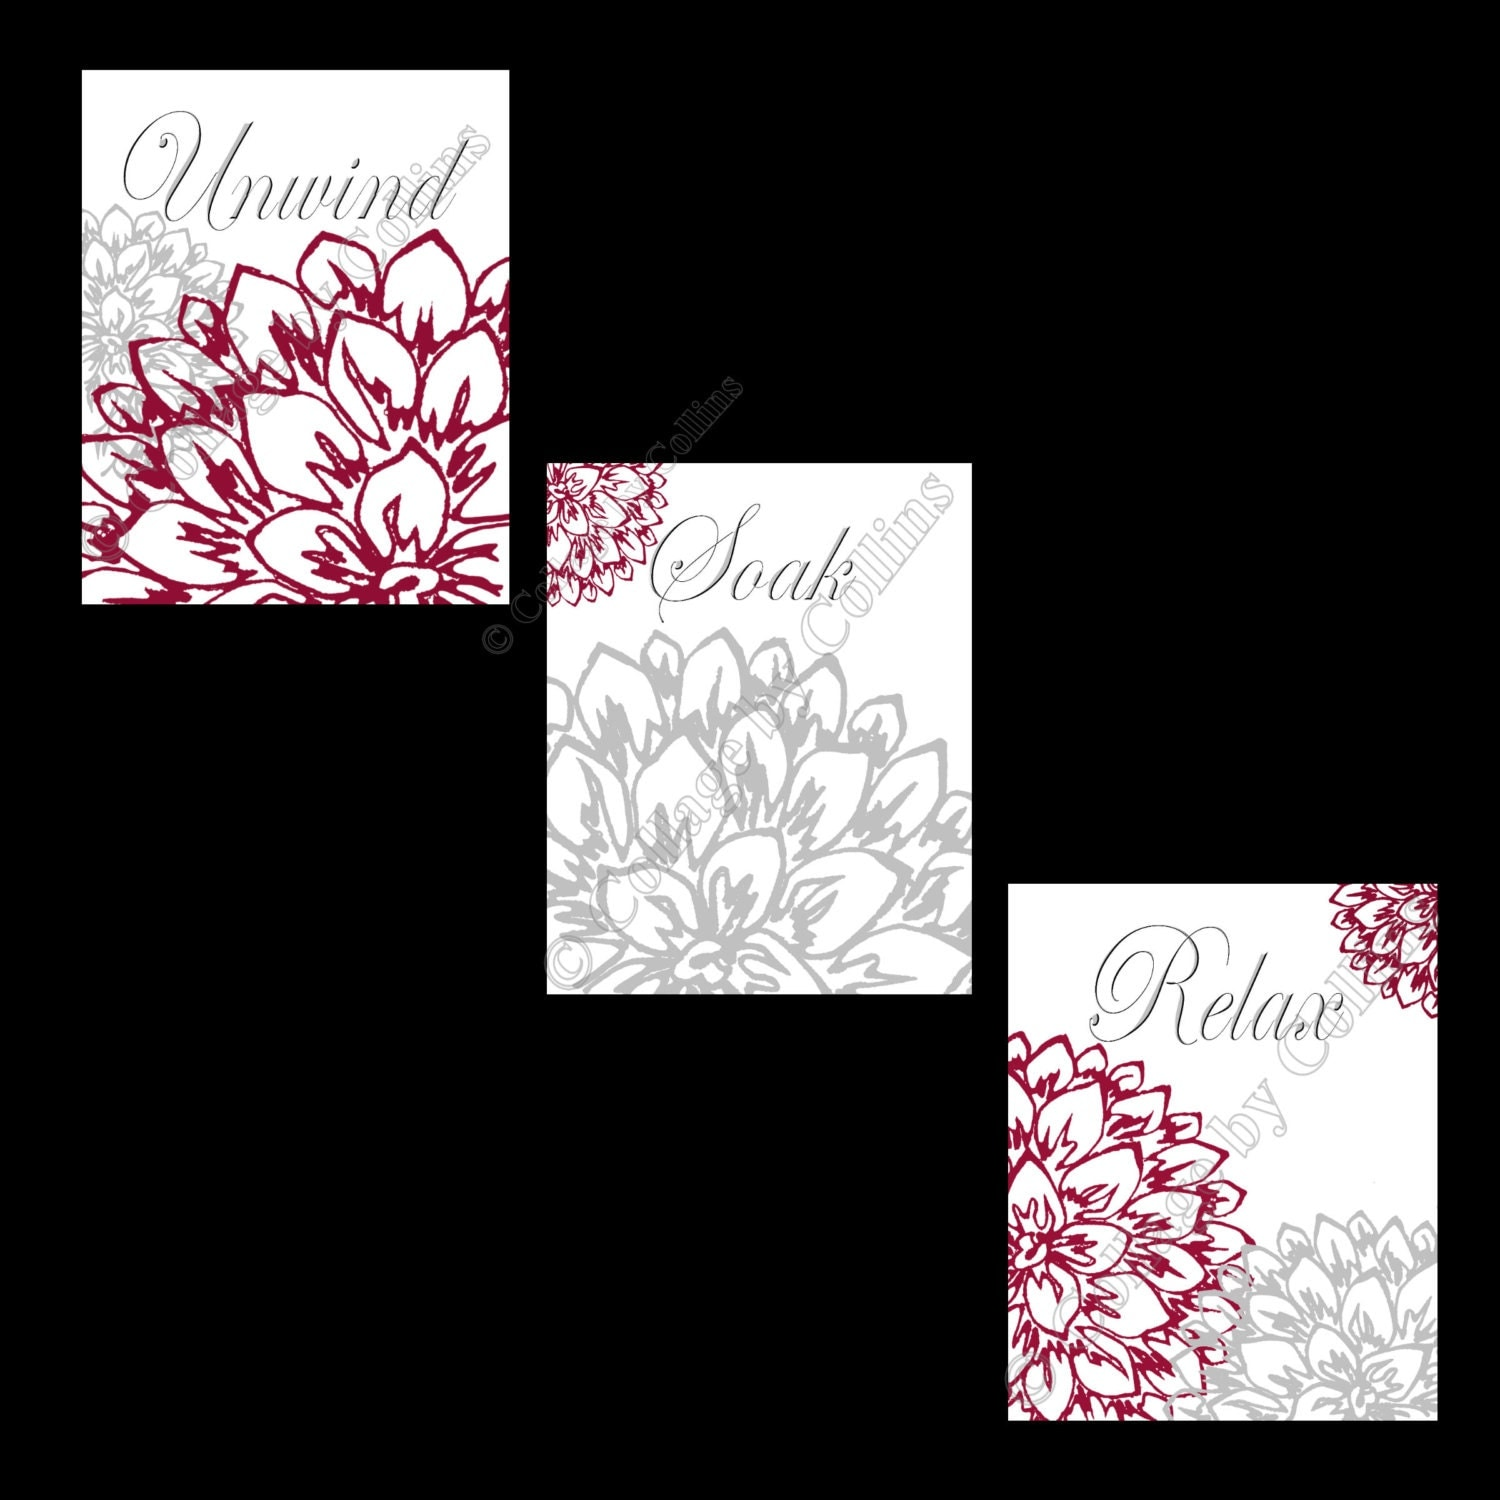 Floral Flower Gray And Burgundy Wall Art Prints Decor Bathroom